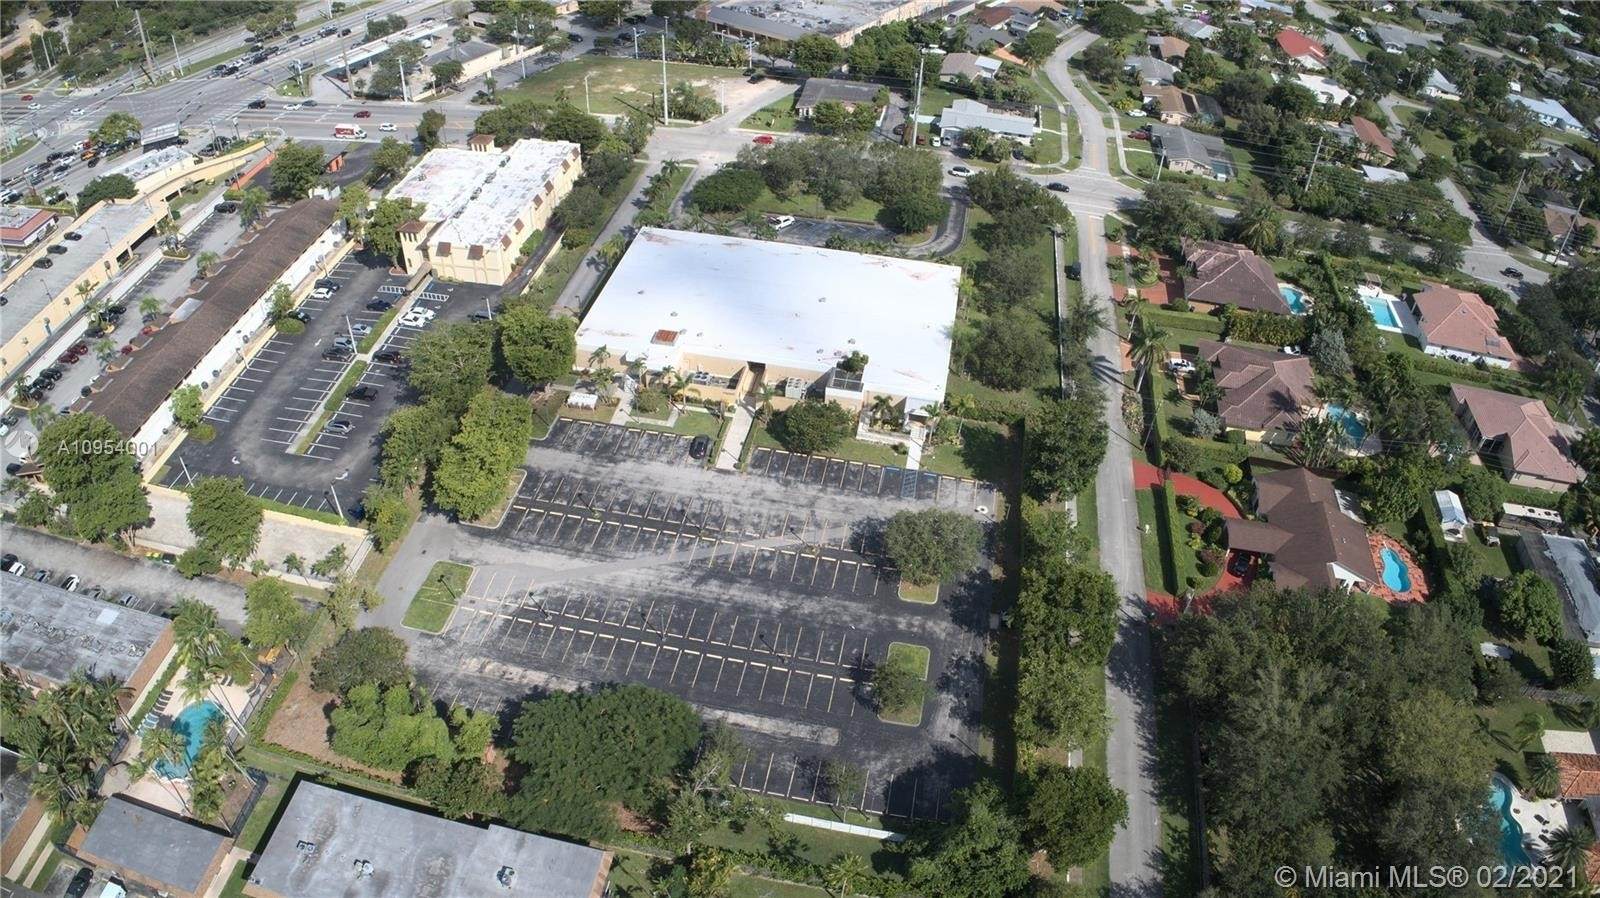 Commercial / Office for Sale at Palmetto Bay, FL 33157